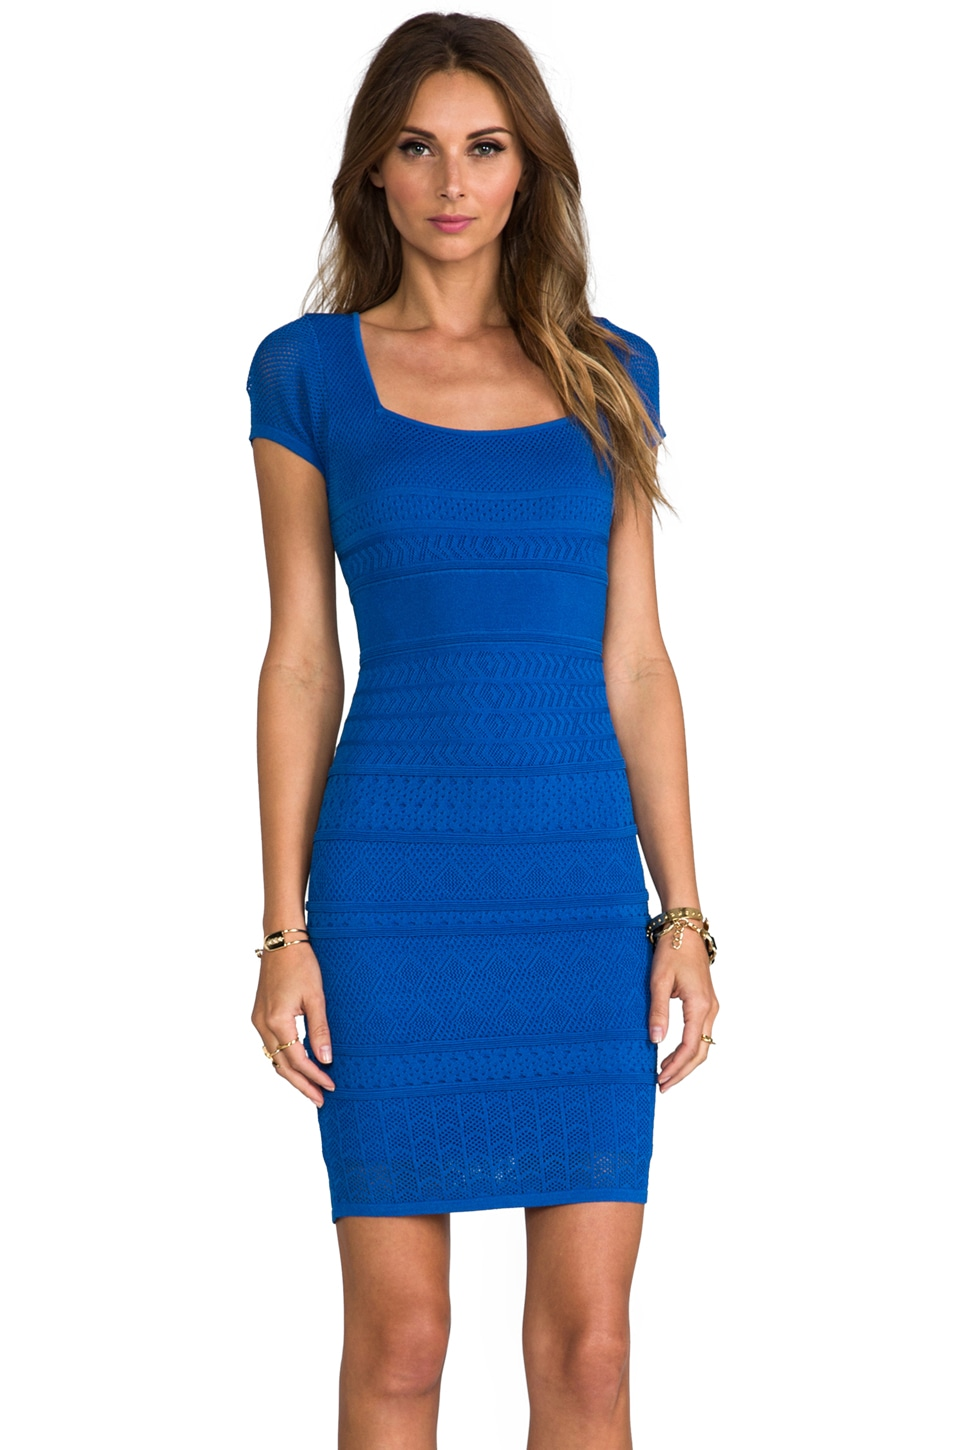 Catherine Malandrino Cheryl Dress in Cobalt